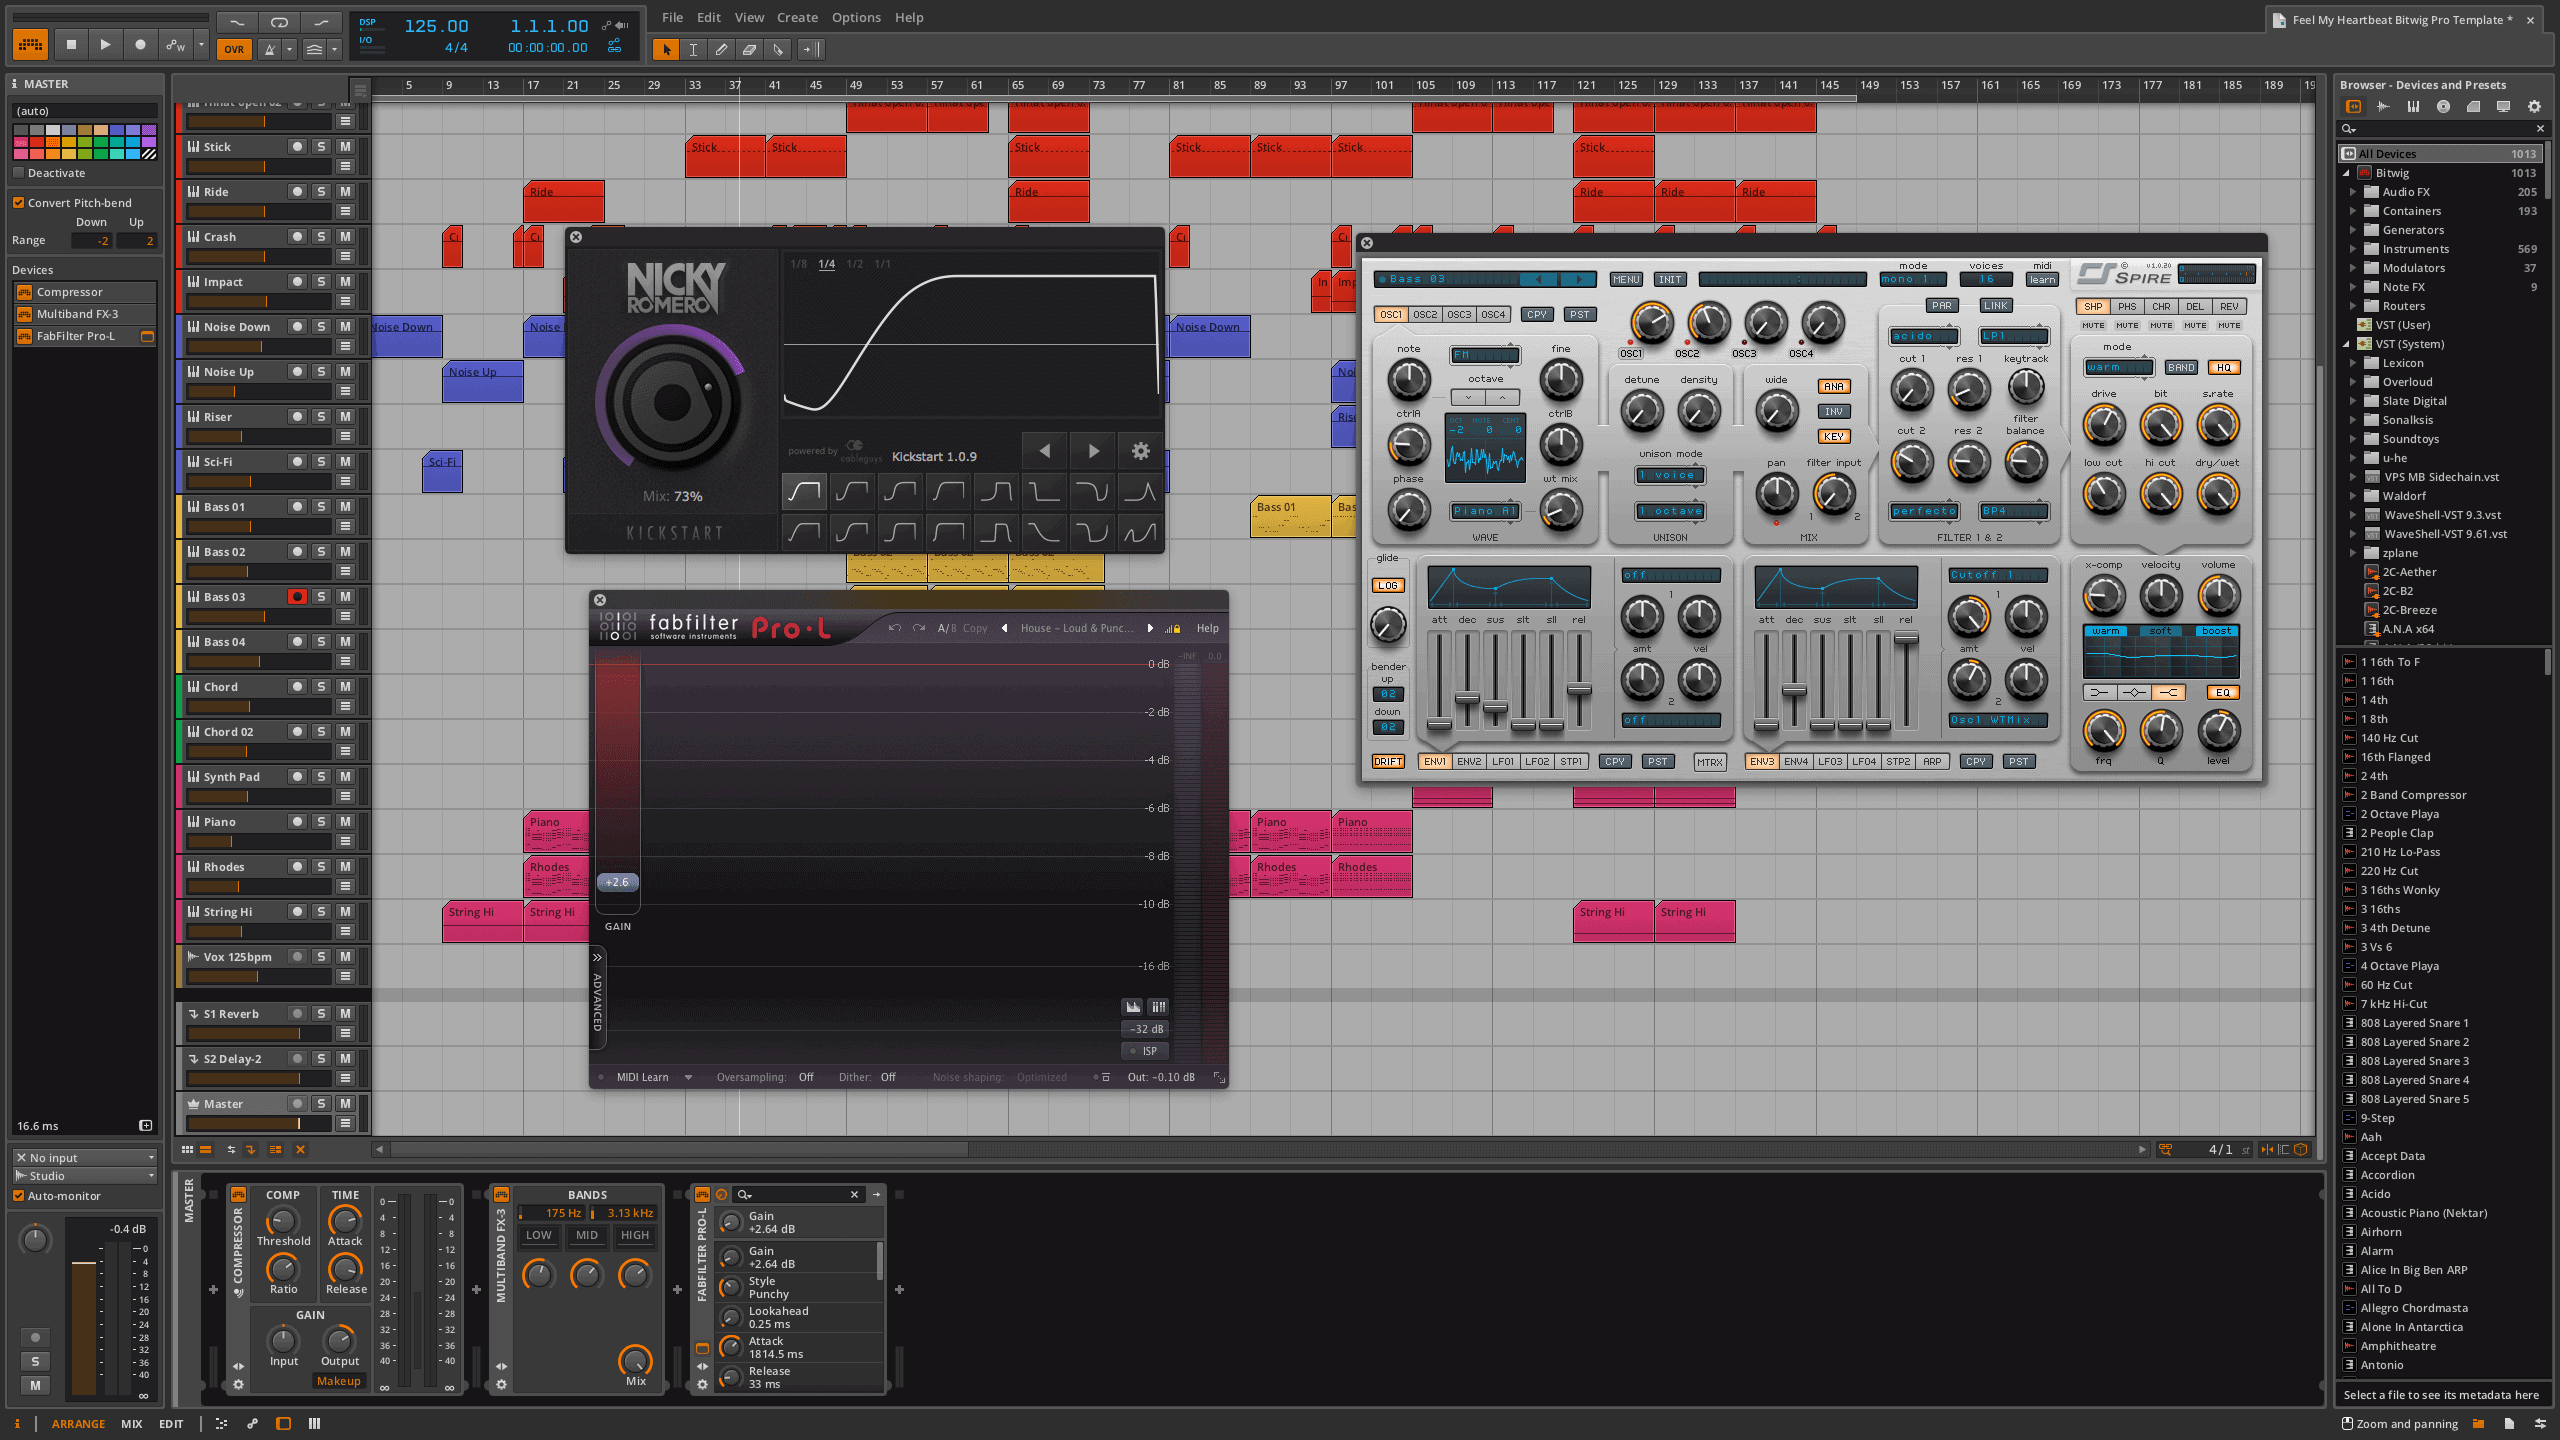 Feel-My-Heartbeat-Bitwig-Pro-Template-2